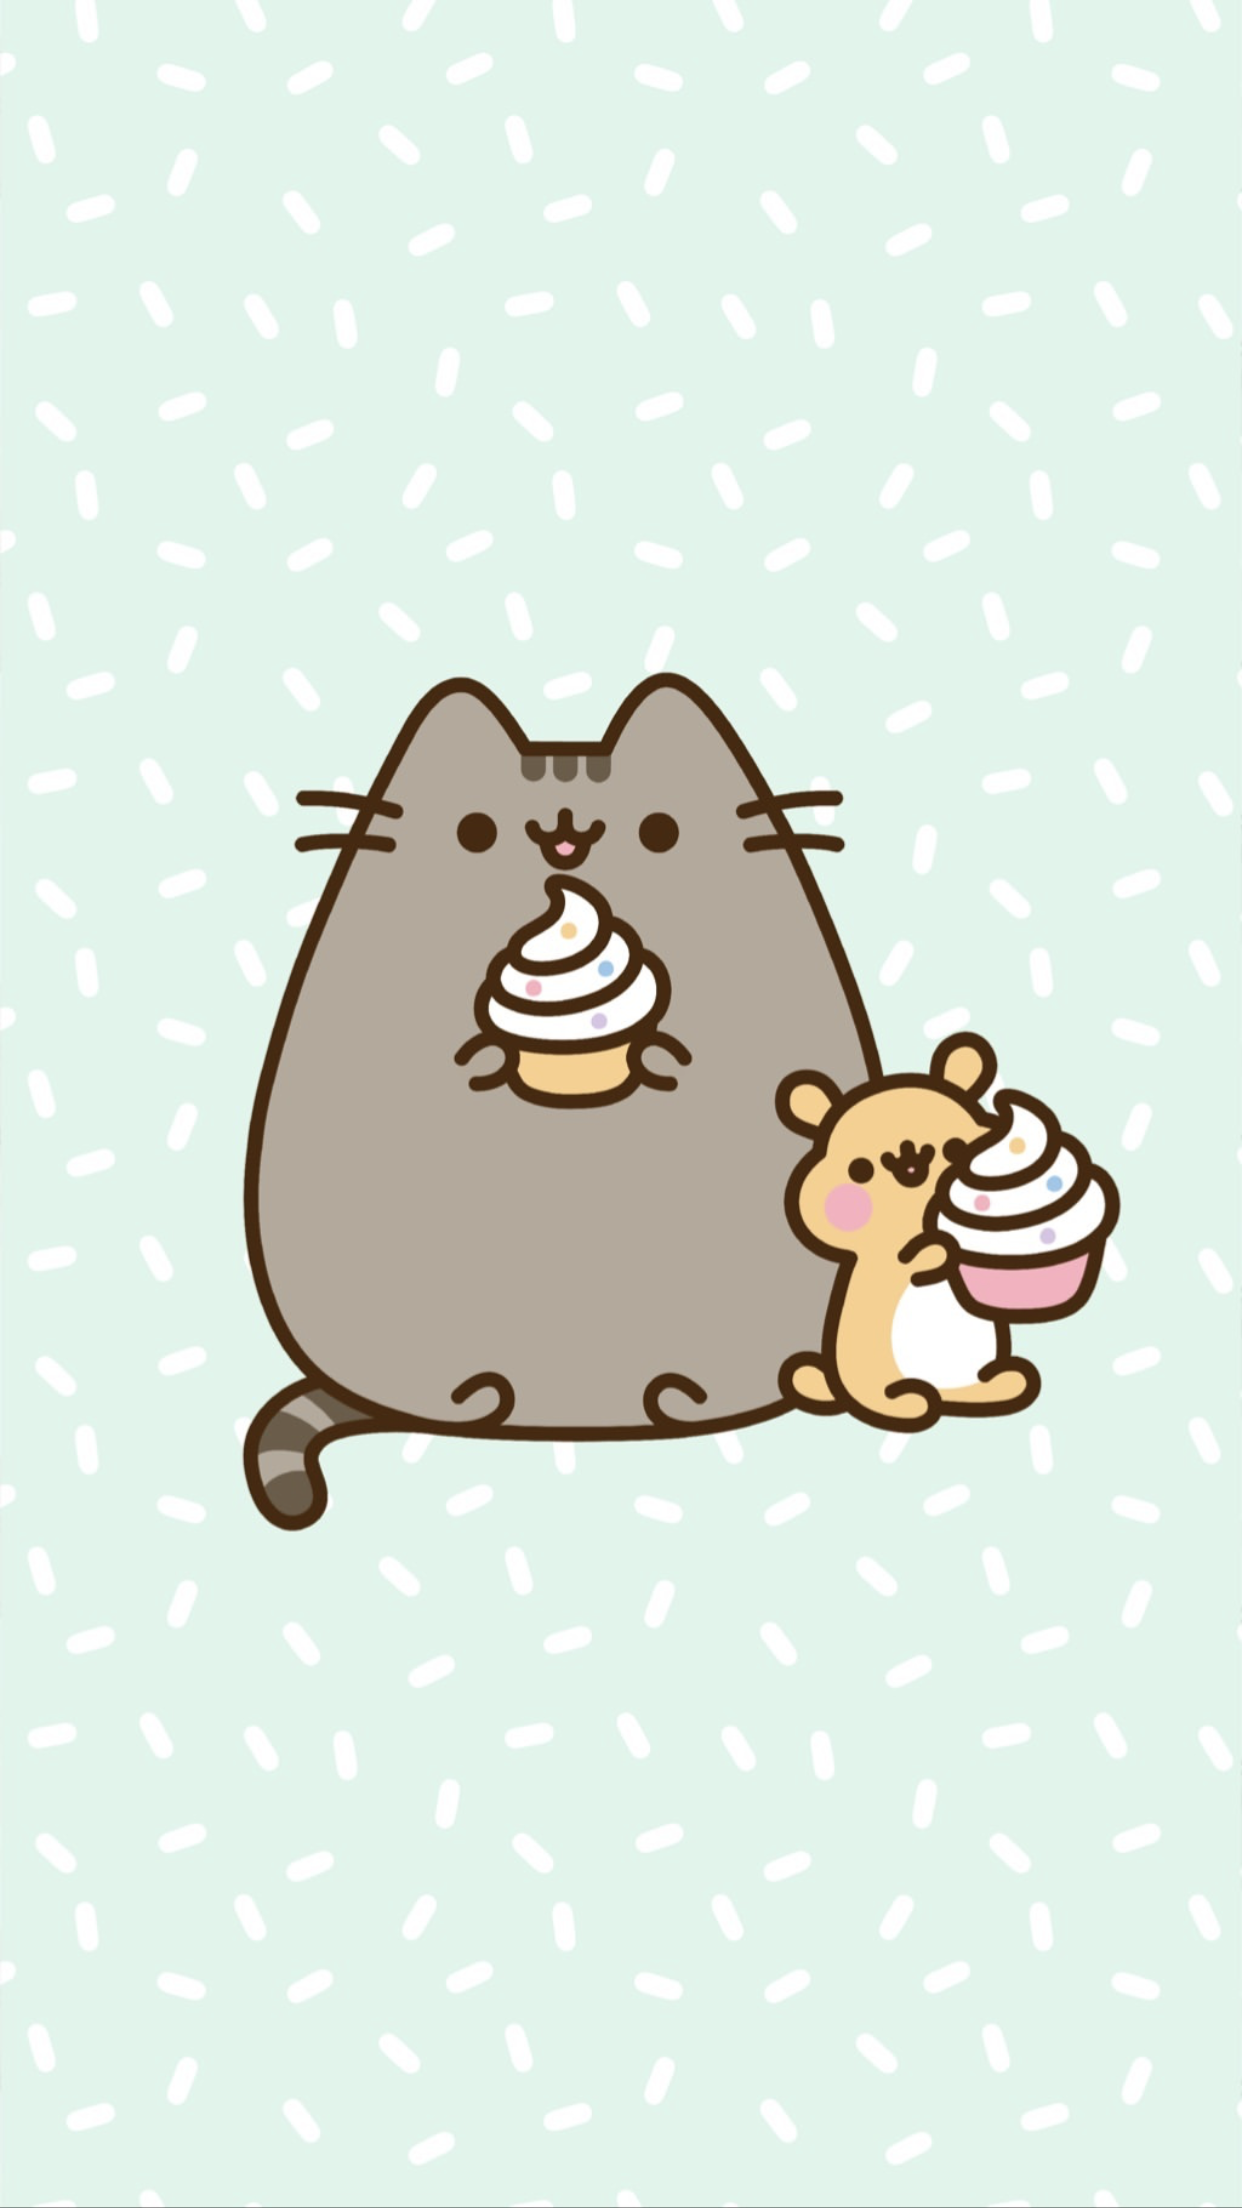 pusheen the cat iphone wallpaper Pusheen cute, Cat